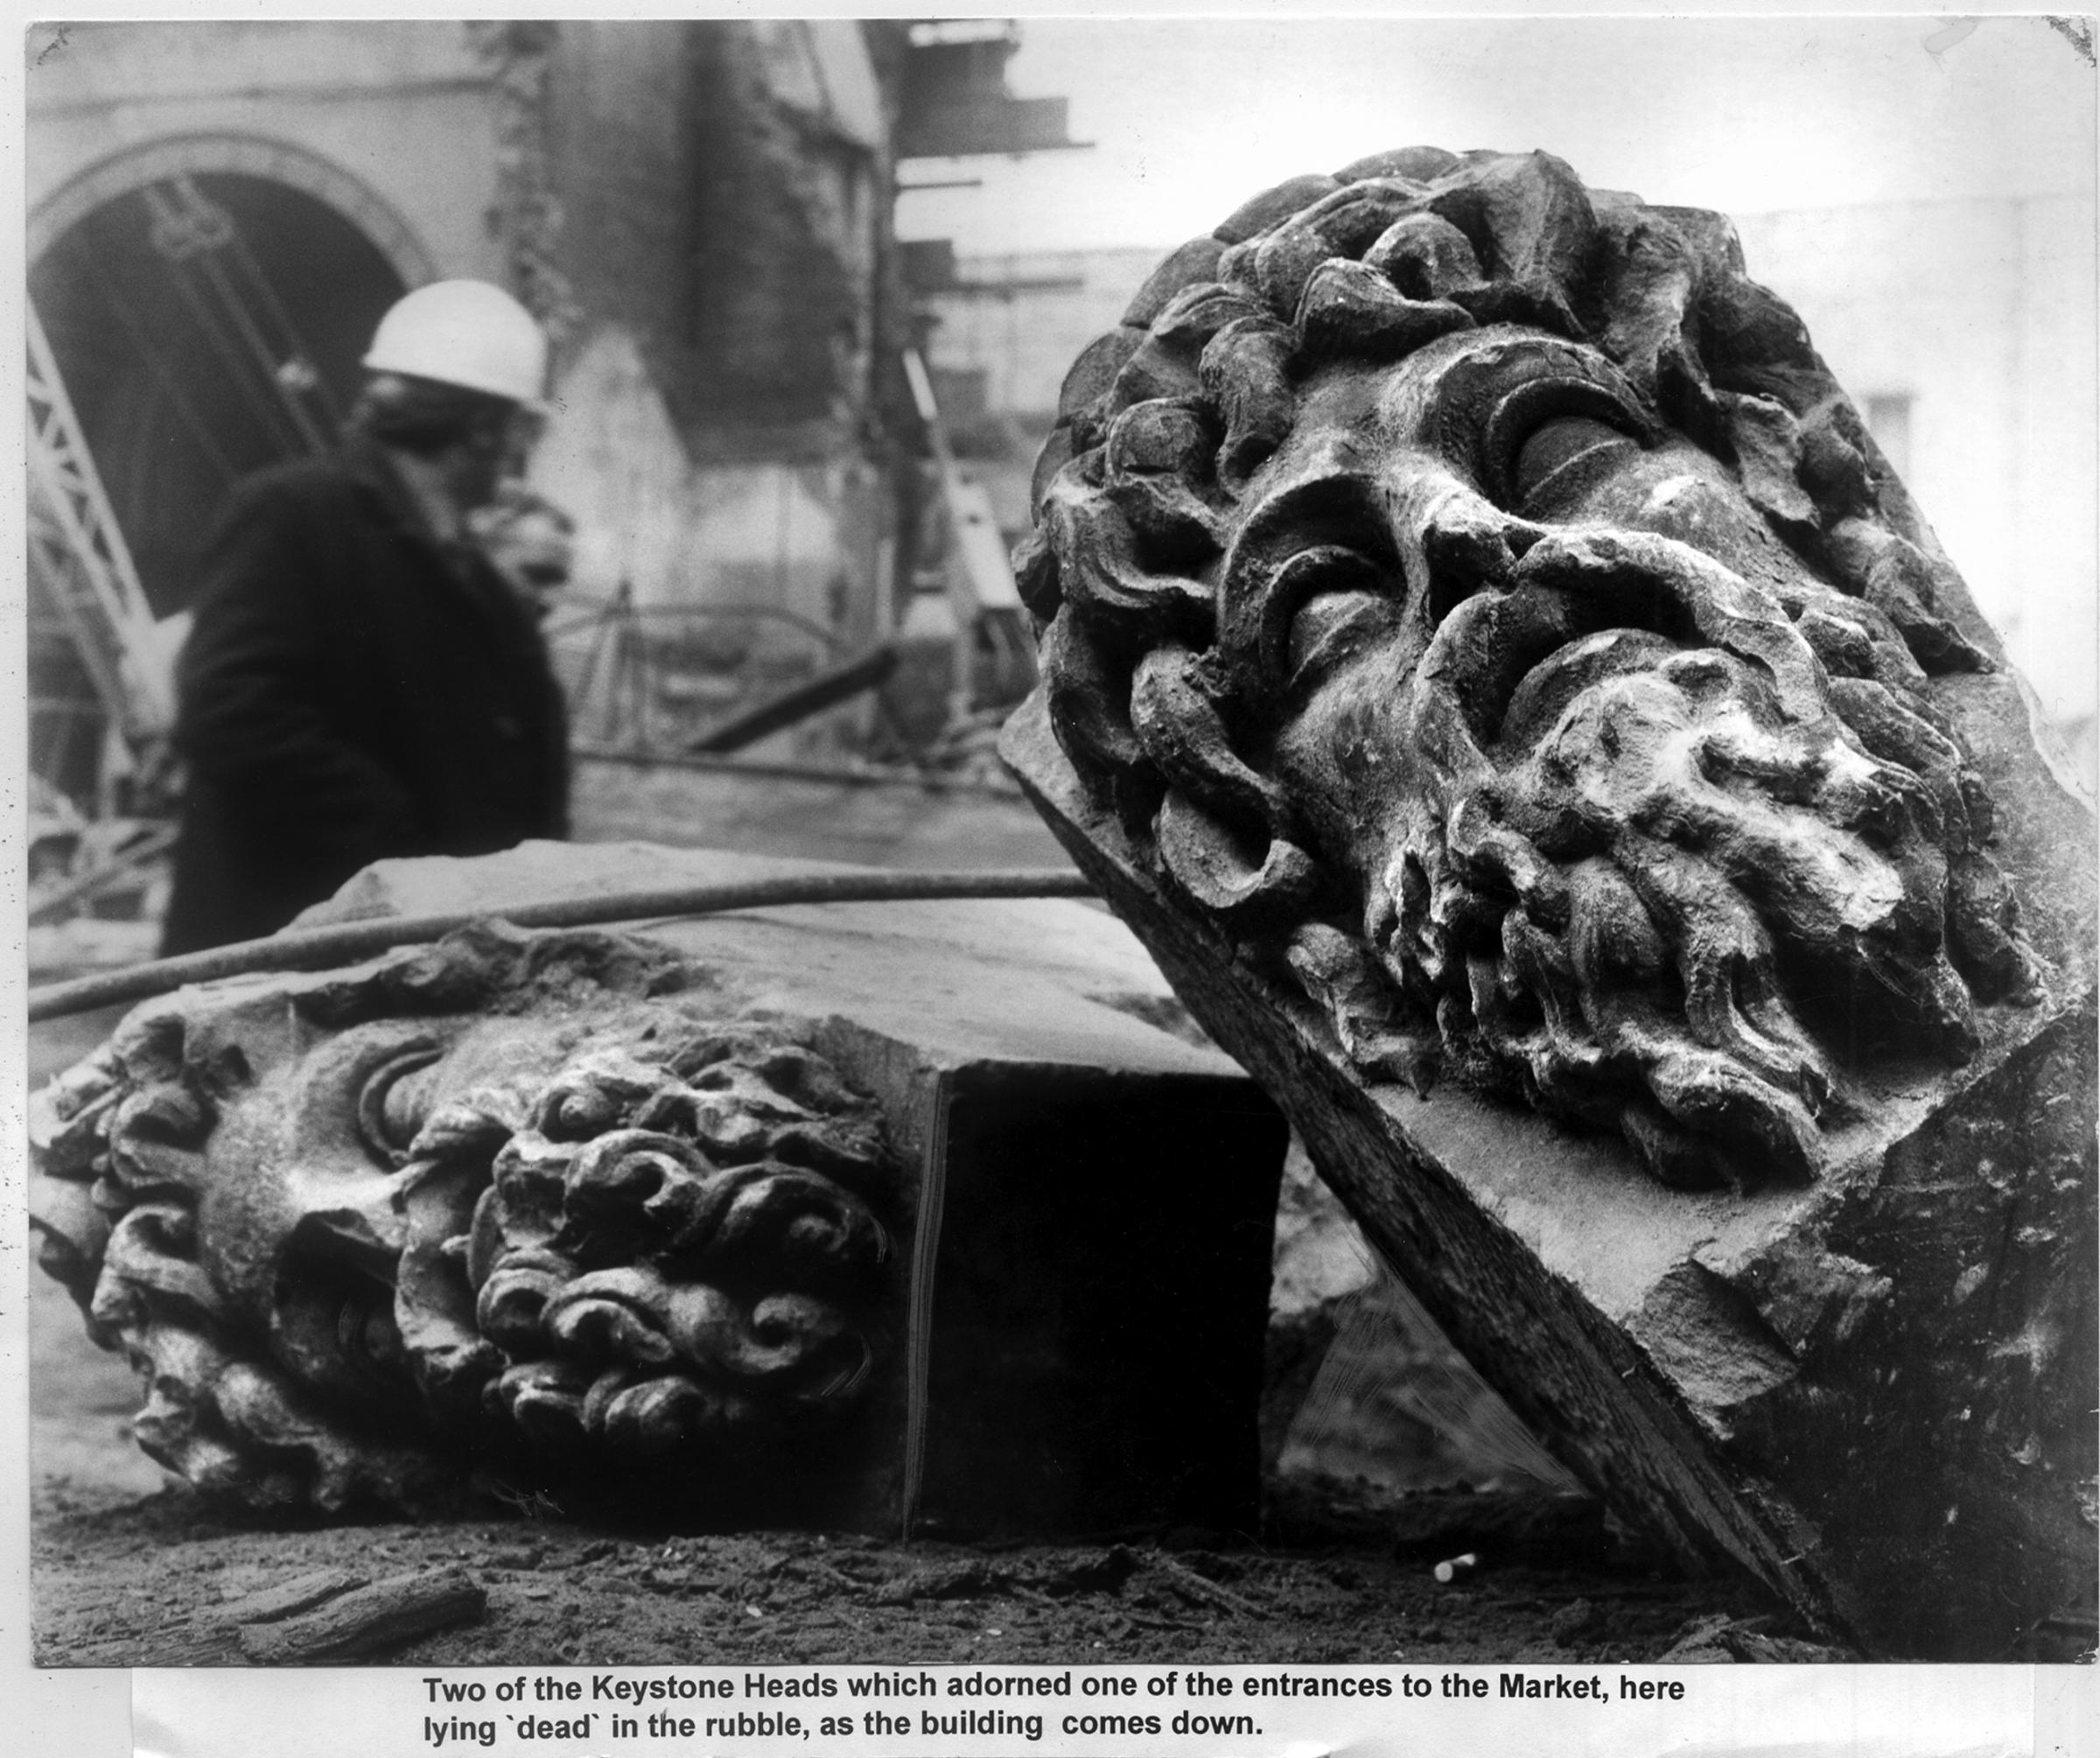 Ornate stone from Bradford's past revitalising city in new plan by heritage rescue team